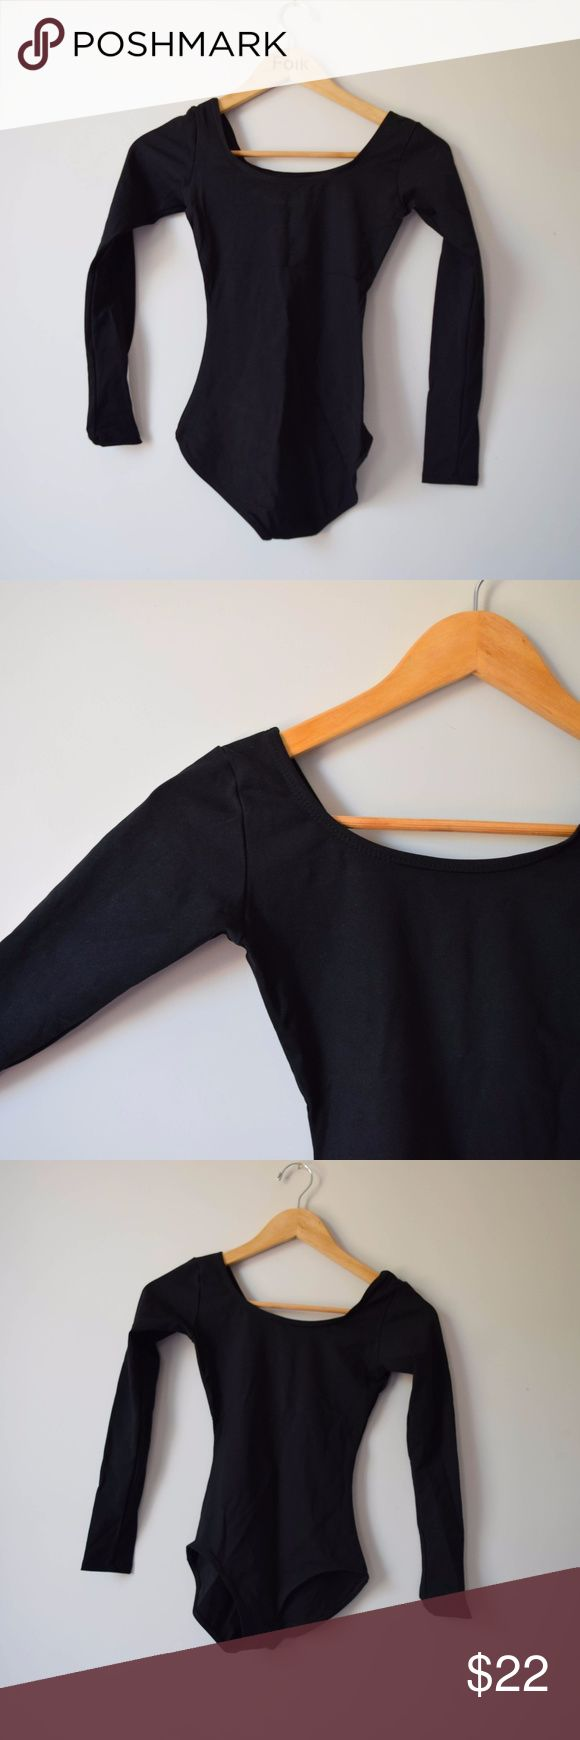 Capezio Long Sleeve Black Leotard NEW Capezio Leotard in black with long sleeves. No tags, but unworn and in perfect condition. Women's size SM. Perfect dance wear, activewear or for layering under shorts, skirts, jeans, sheer dresses! Capezio Other